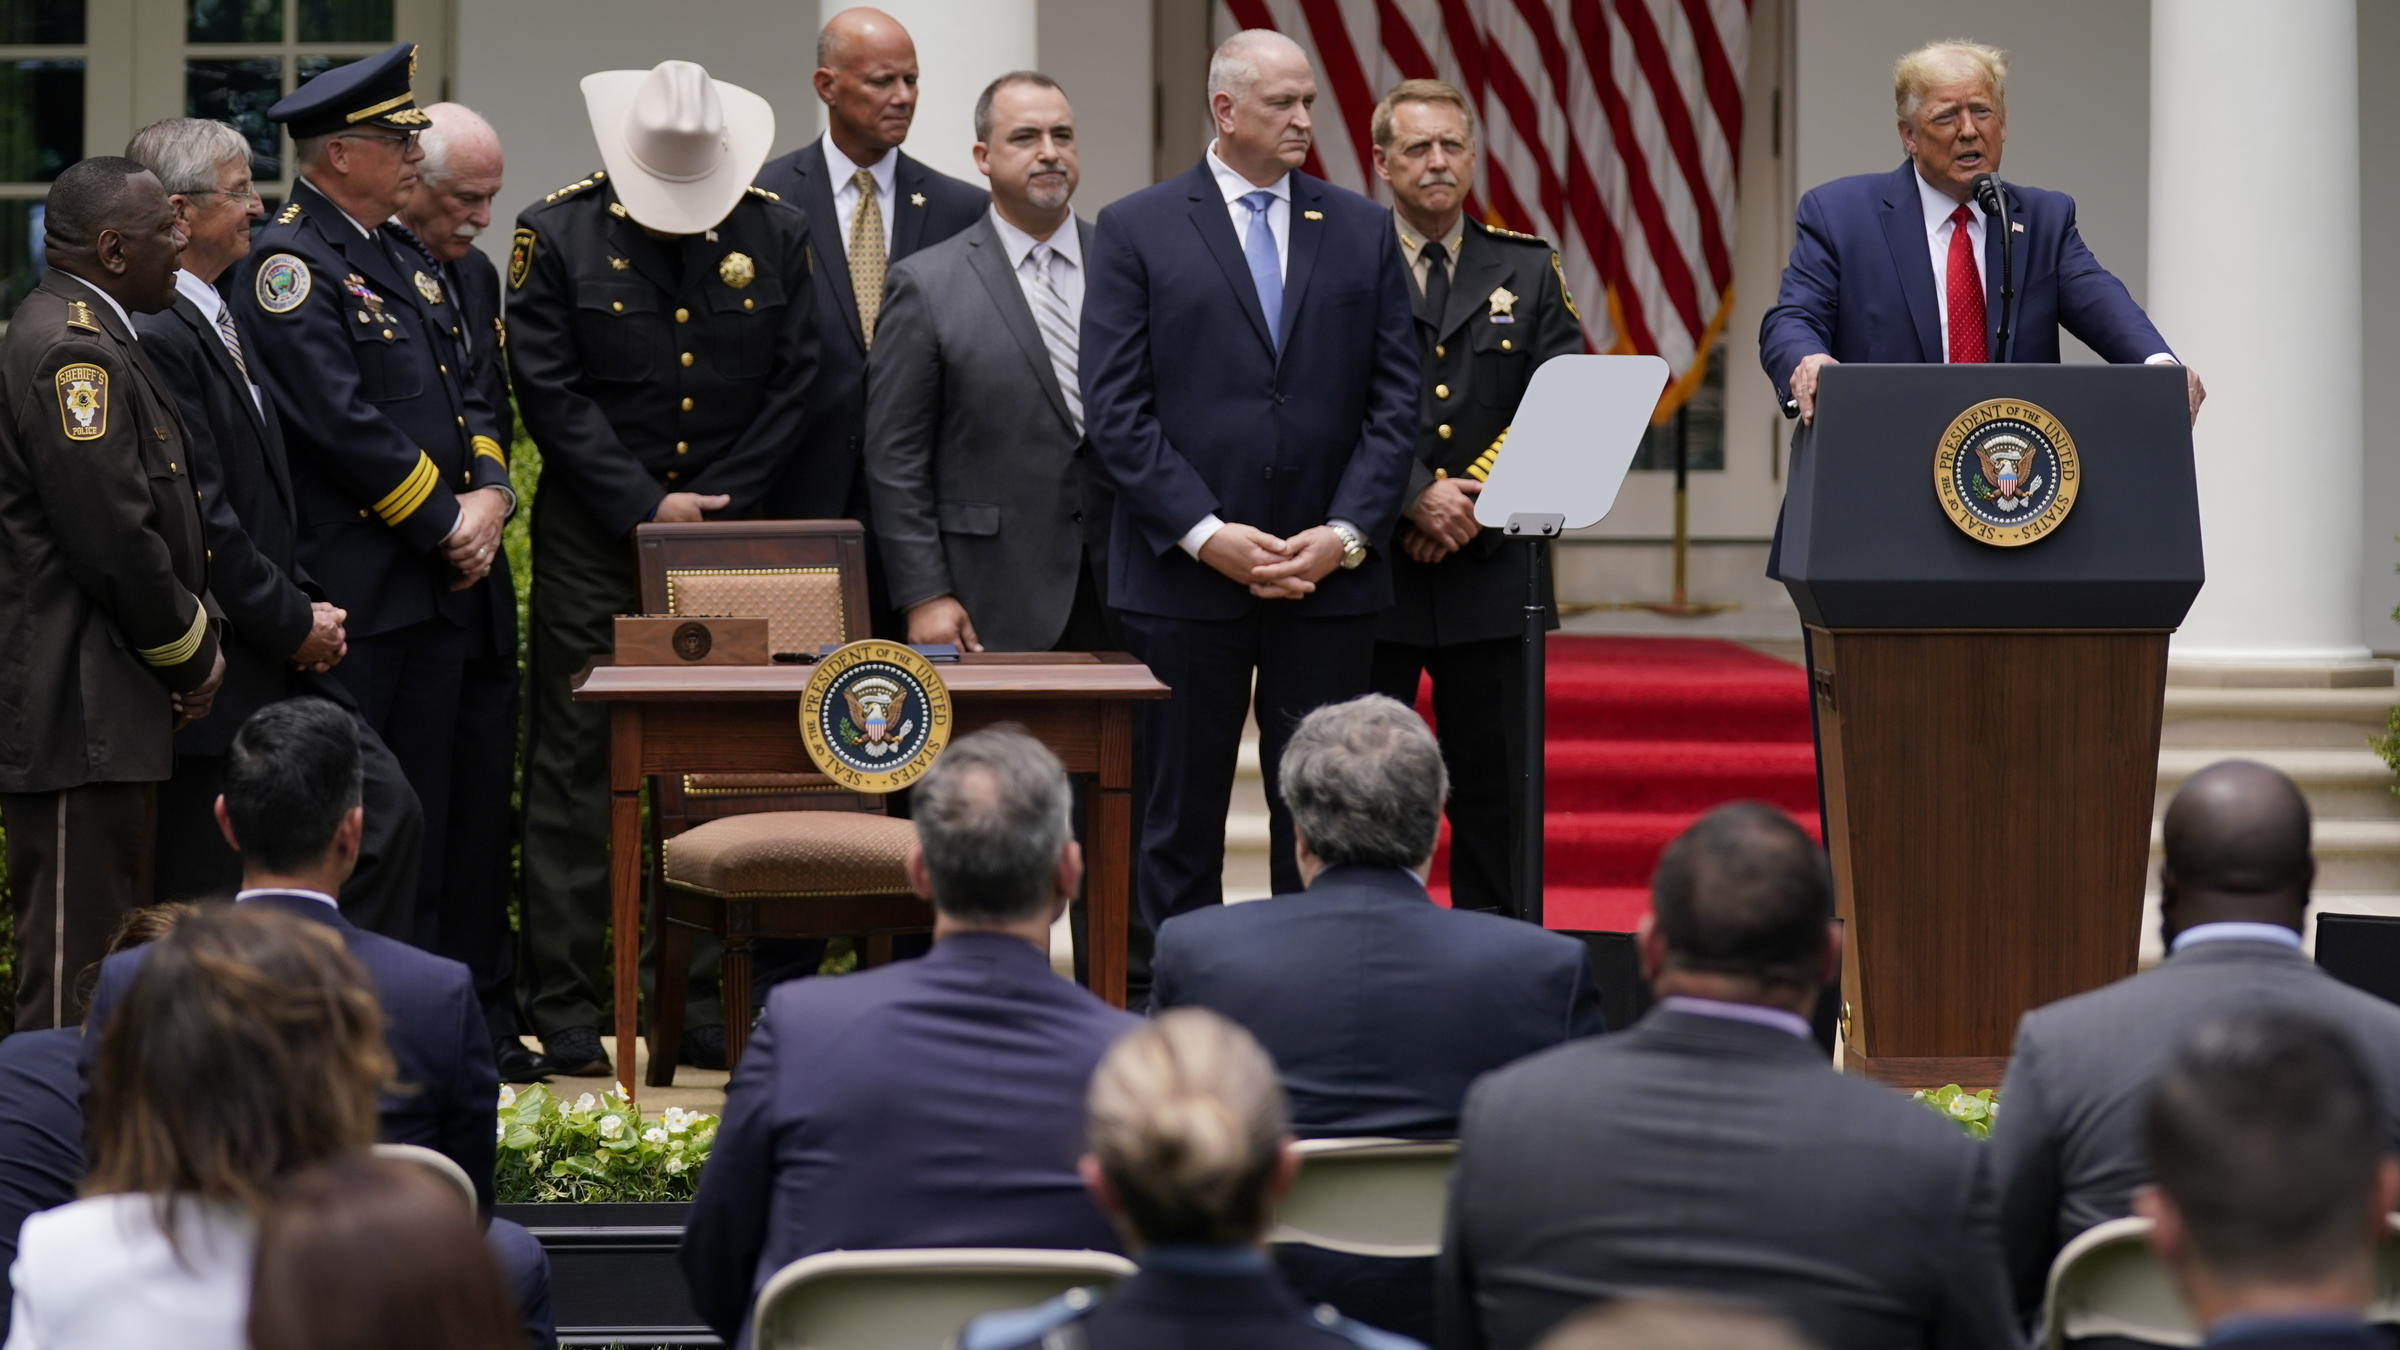 Trump Hailing Law Enforcement Signs Executive Order Calling For Police Reform Wbfo